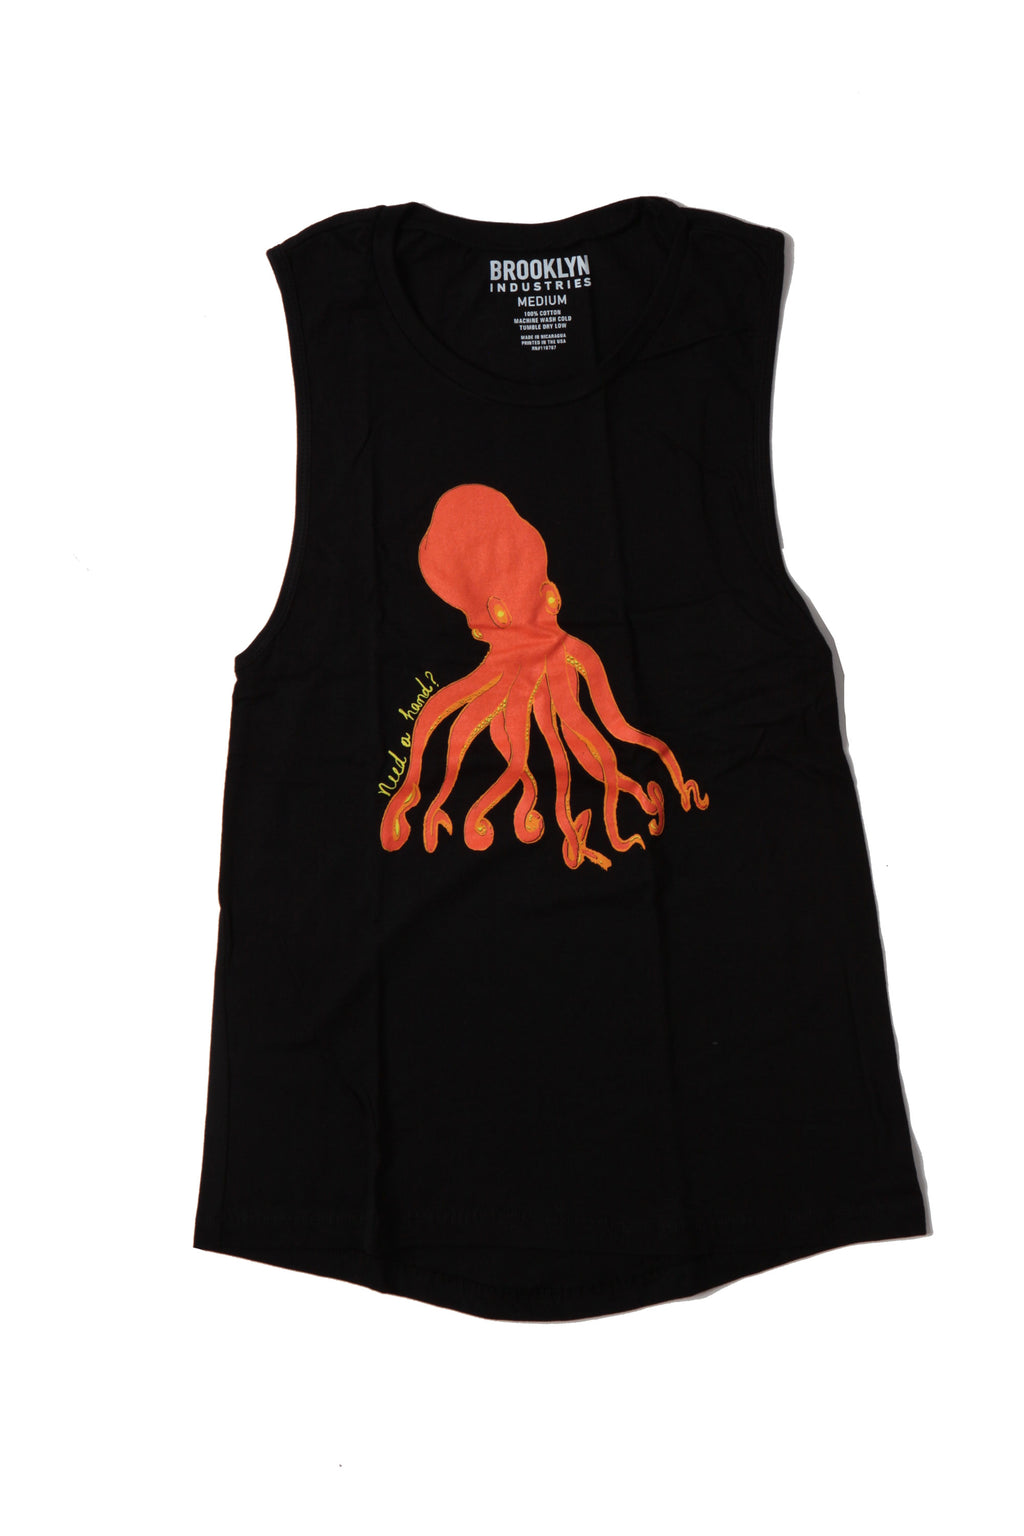 FLAT LAY OF BLACK WOMENS TANK TOP WITH ORANGE OCTOPUS GRAPHIC.